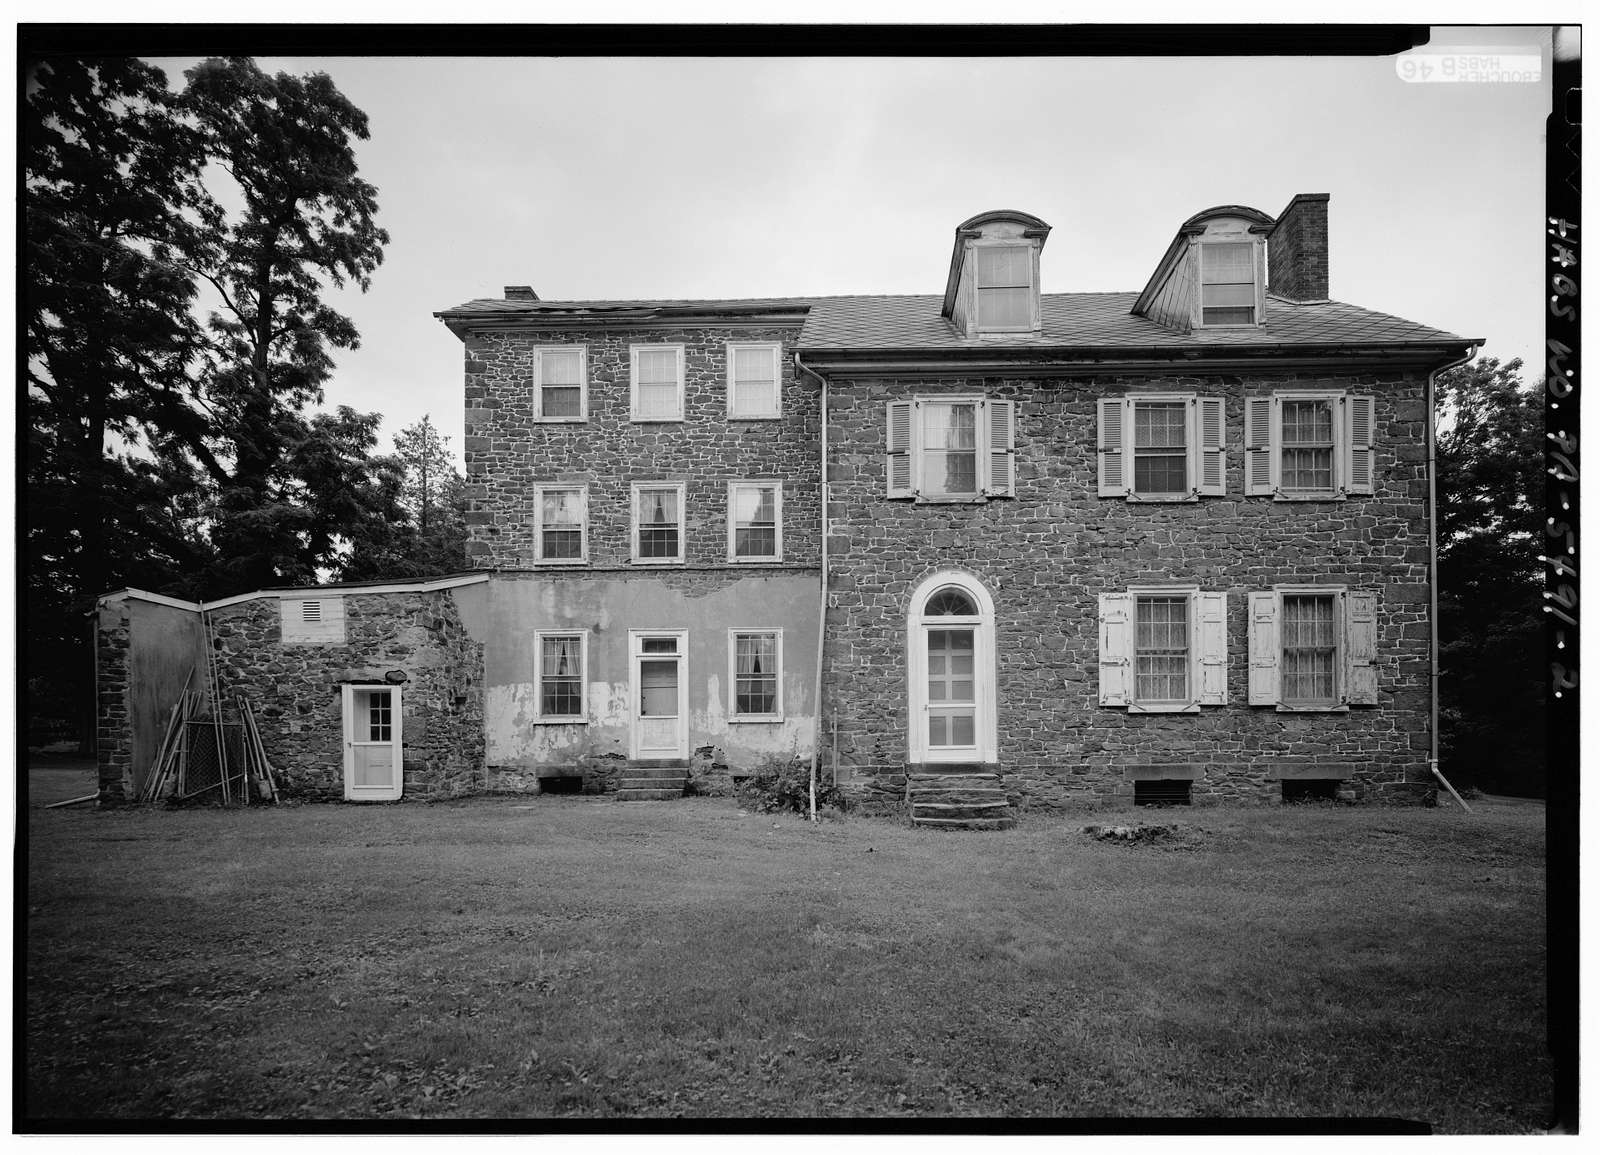 Naylor House, Swift & Silver Lake Roads (Middletown Township), Langhorne, Bucks County, PA